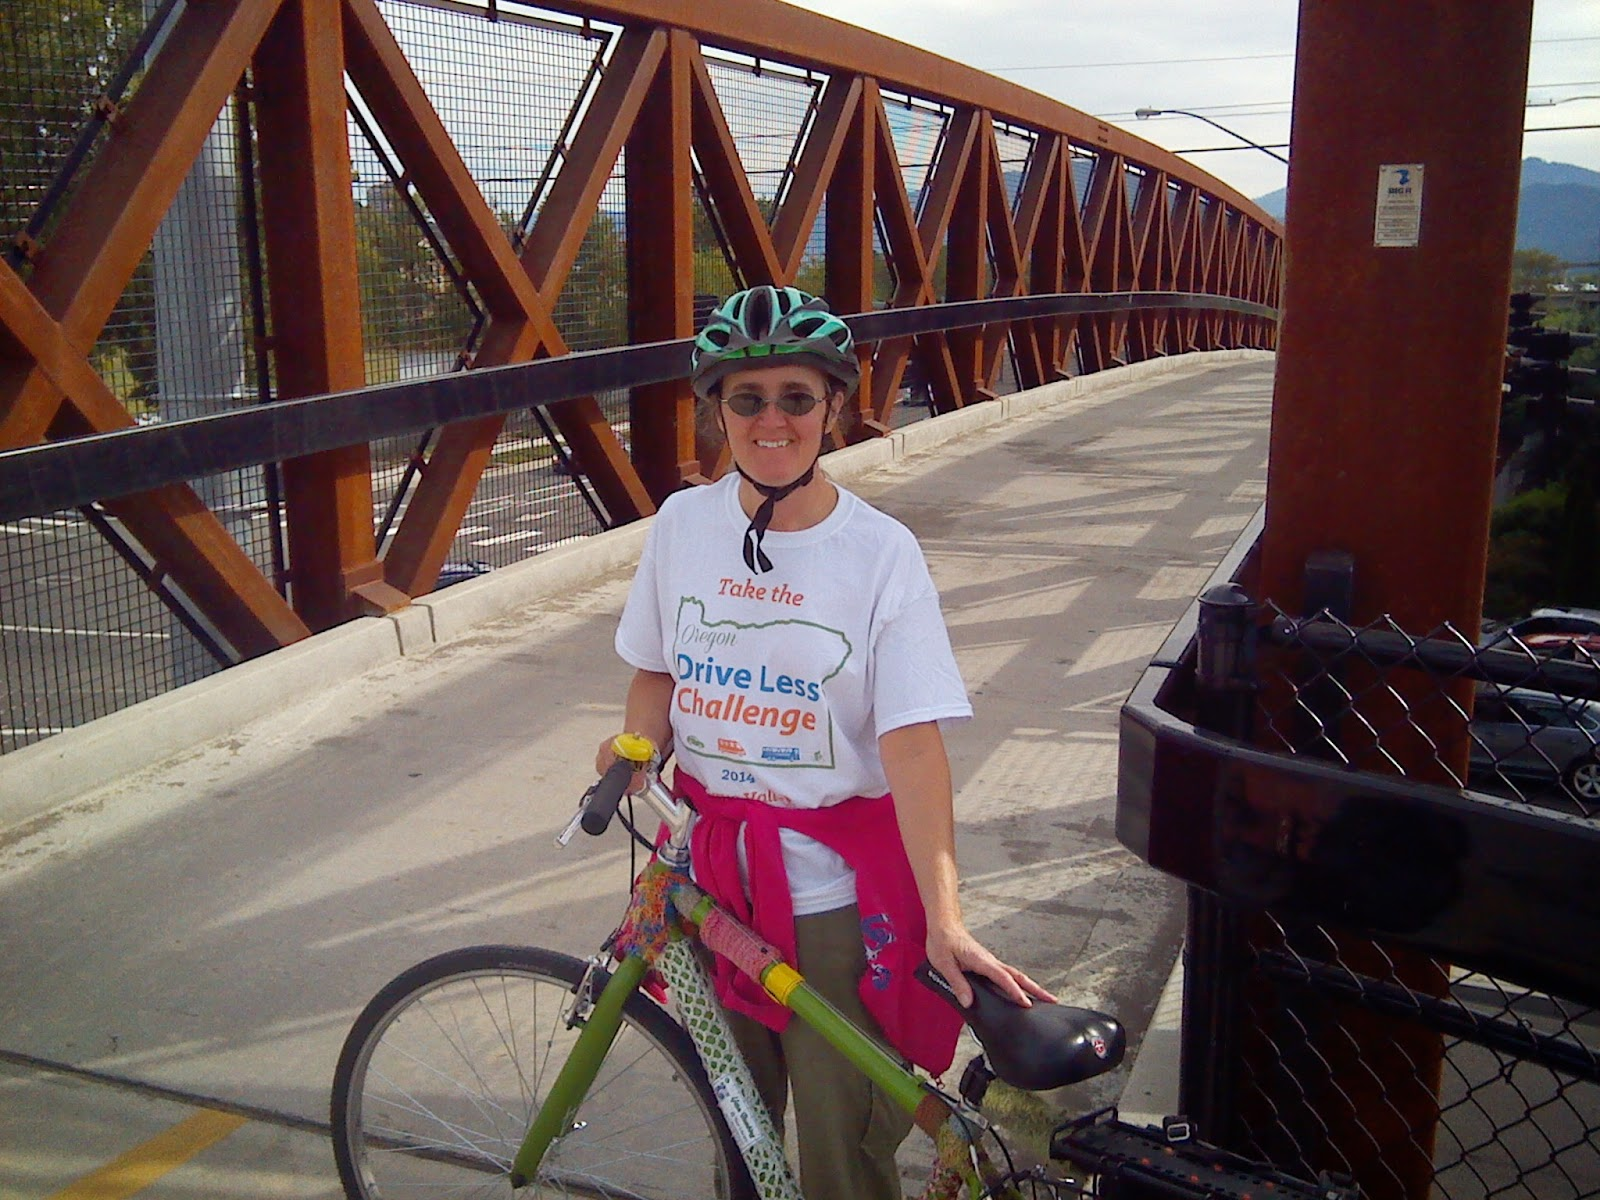 Cynthia M. Parkhill with her bicycle on a pedestrian walkway over a road.